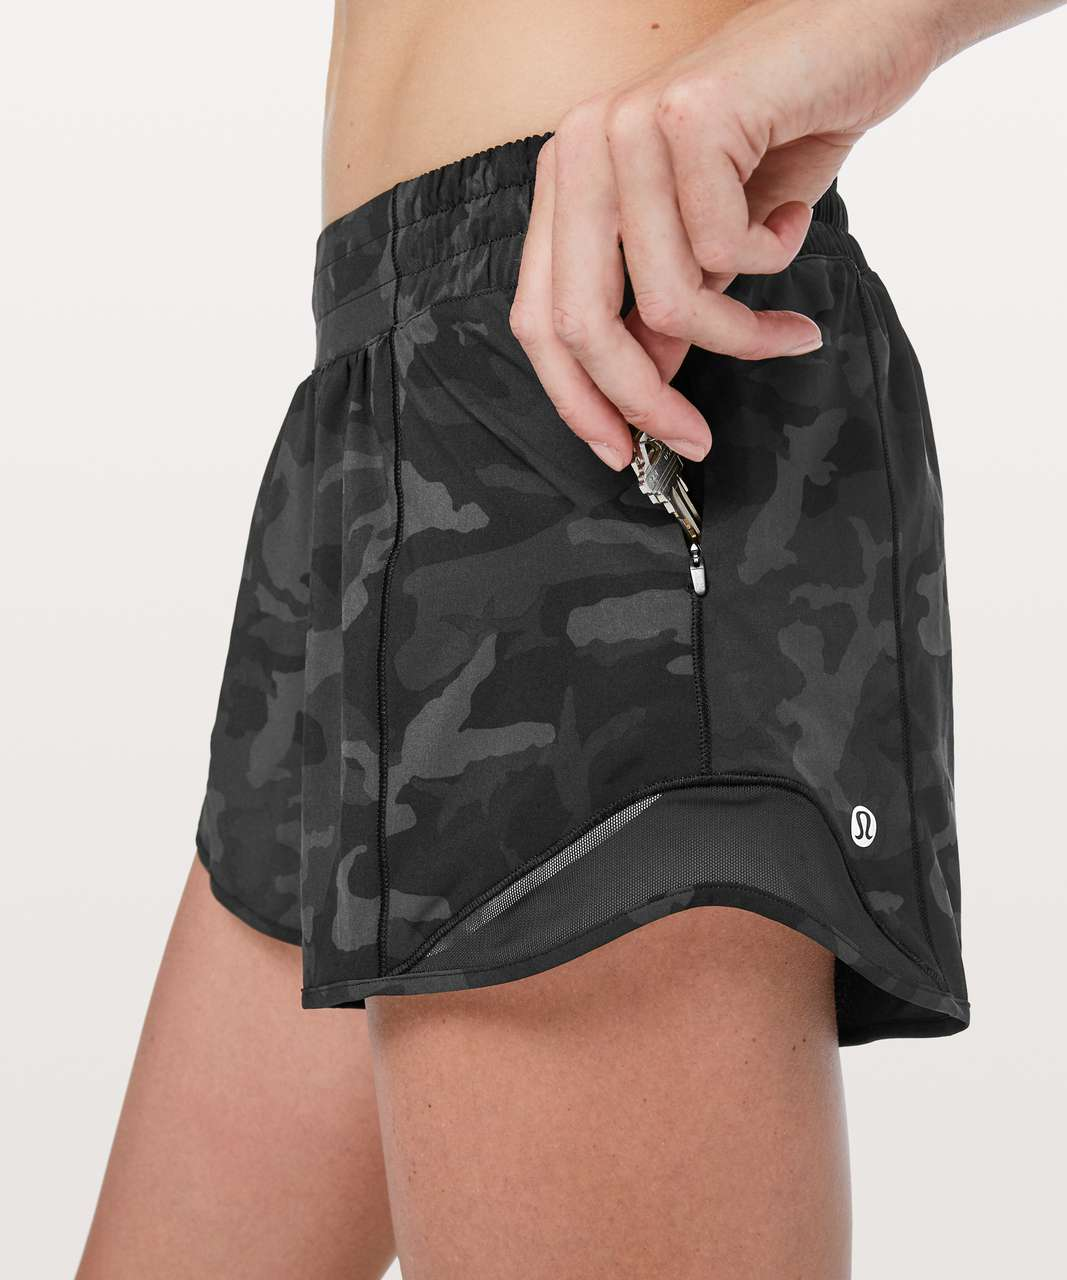 "Lululemon Hotty Hot Short II *Long 4"" - Incognito Camo Multi Grey / Black"